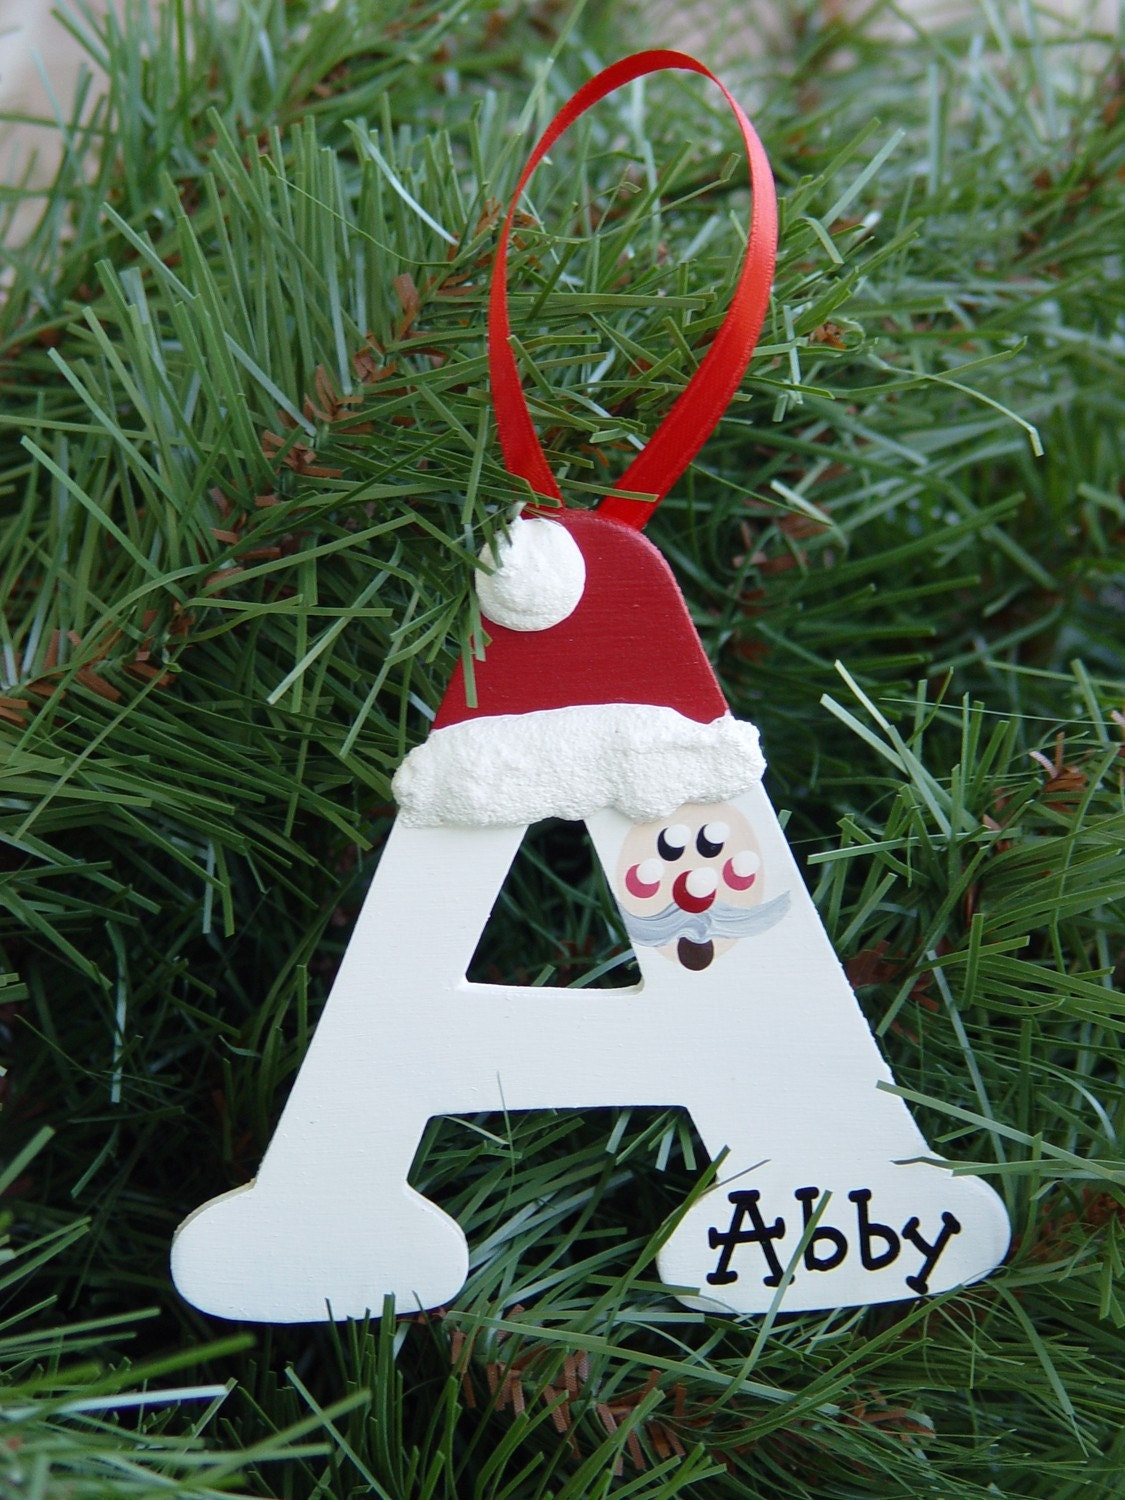 Wooden Letter Christmas Tree Decorations : Personalized santa letter ornaments